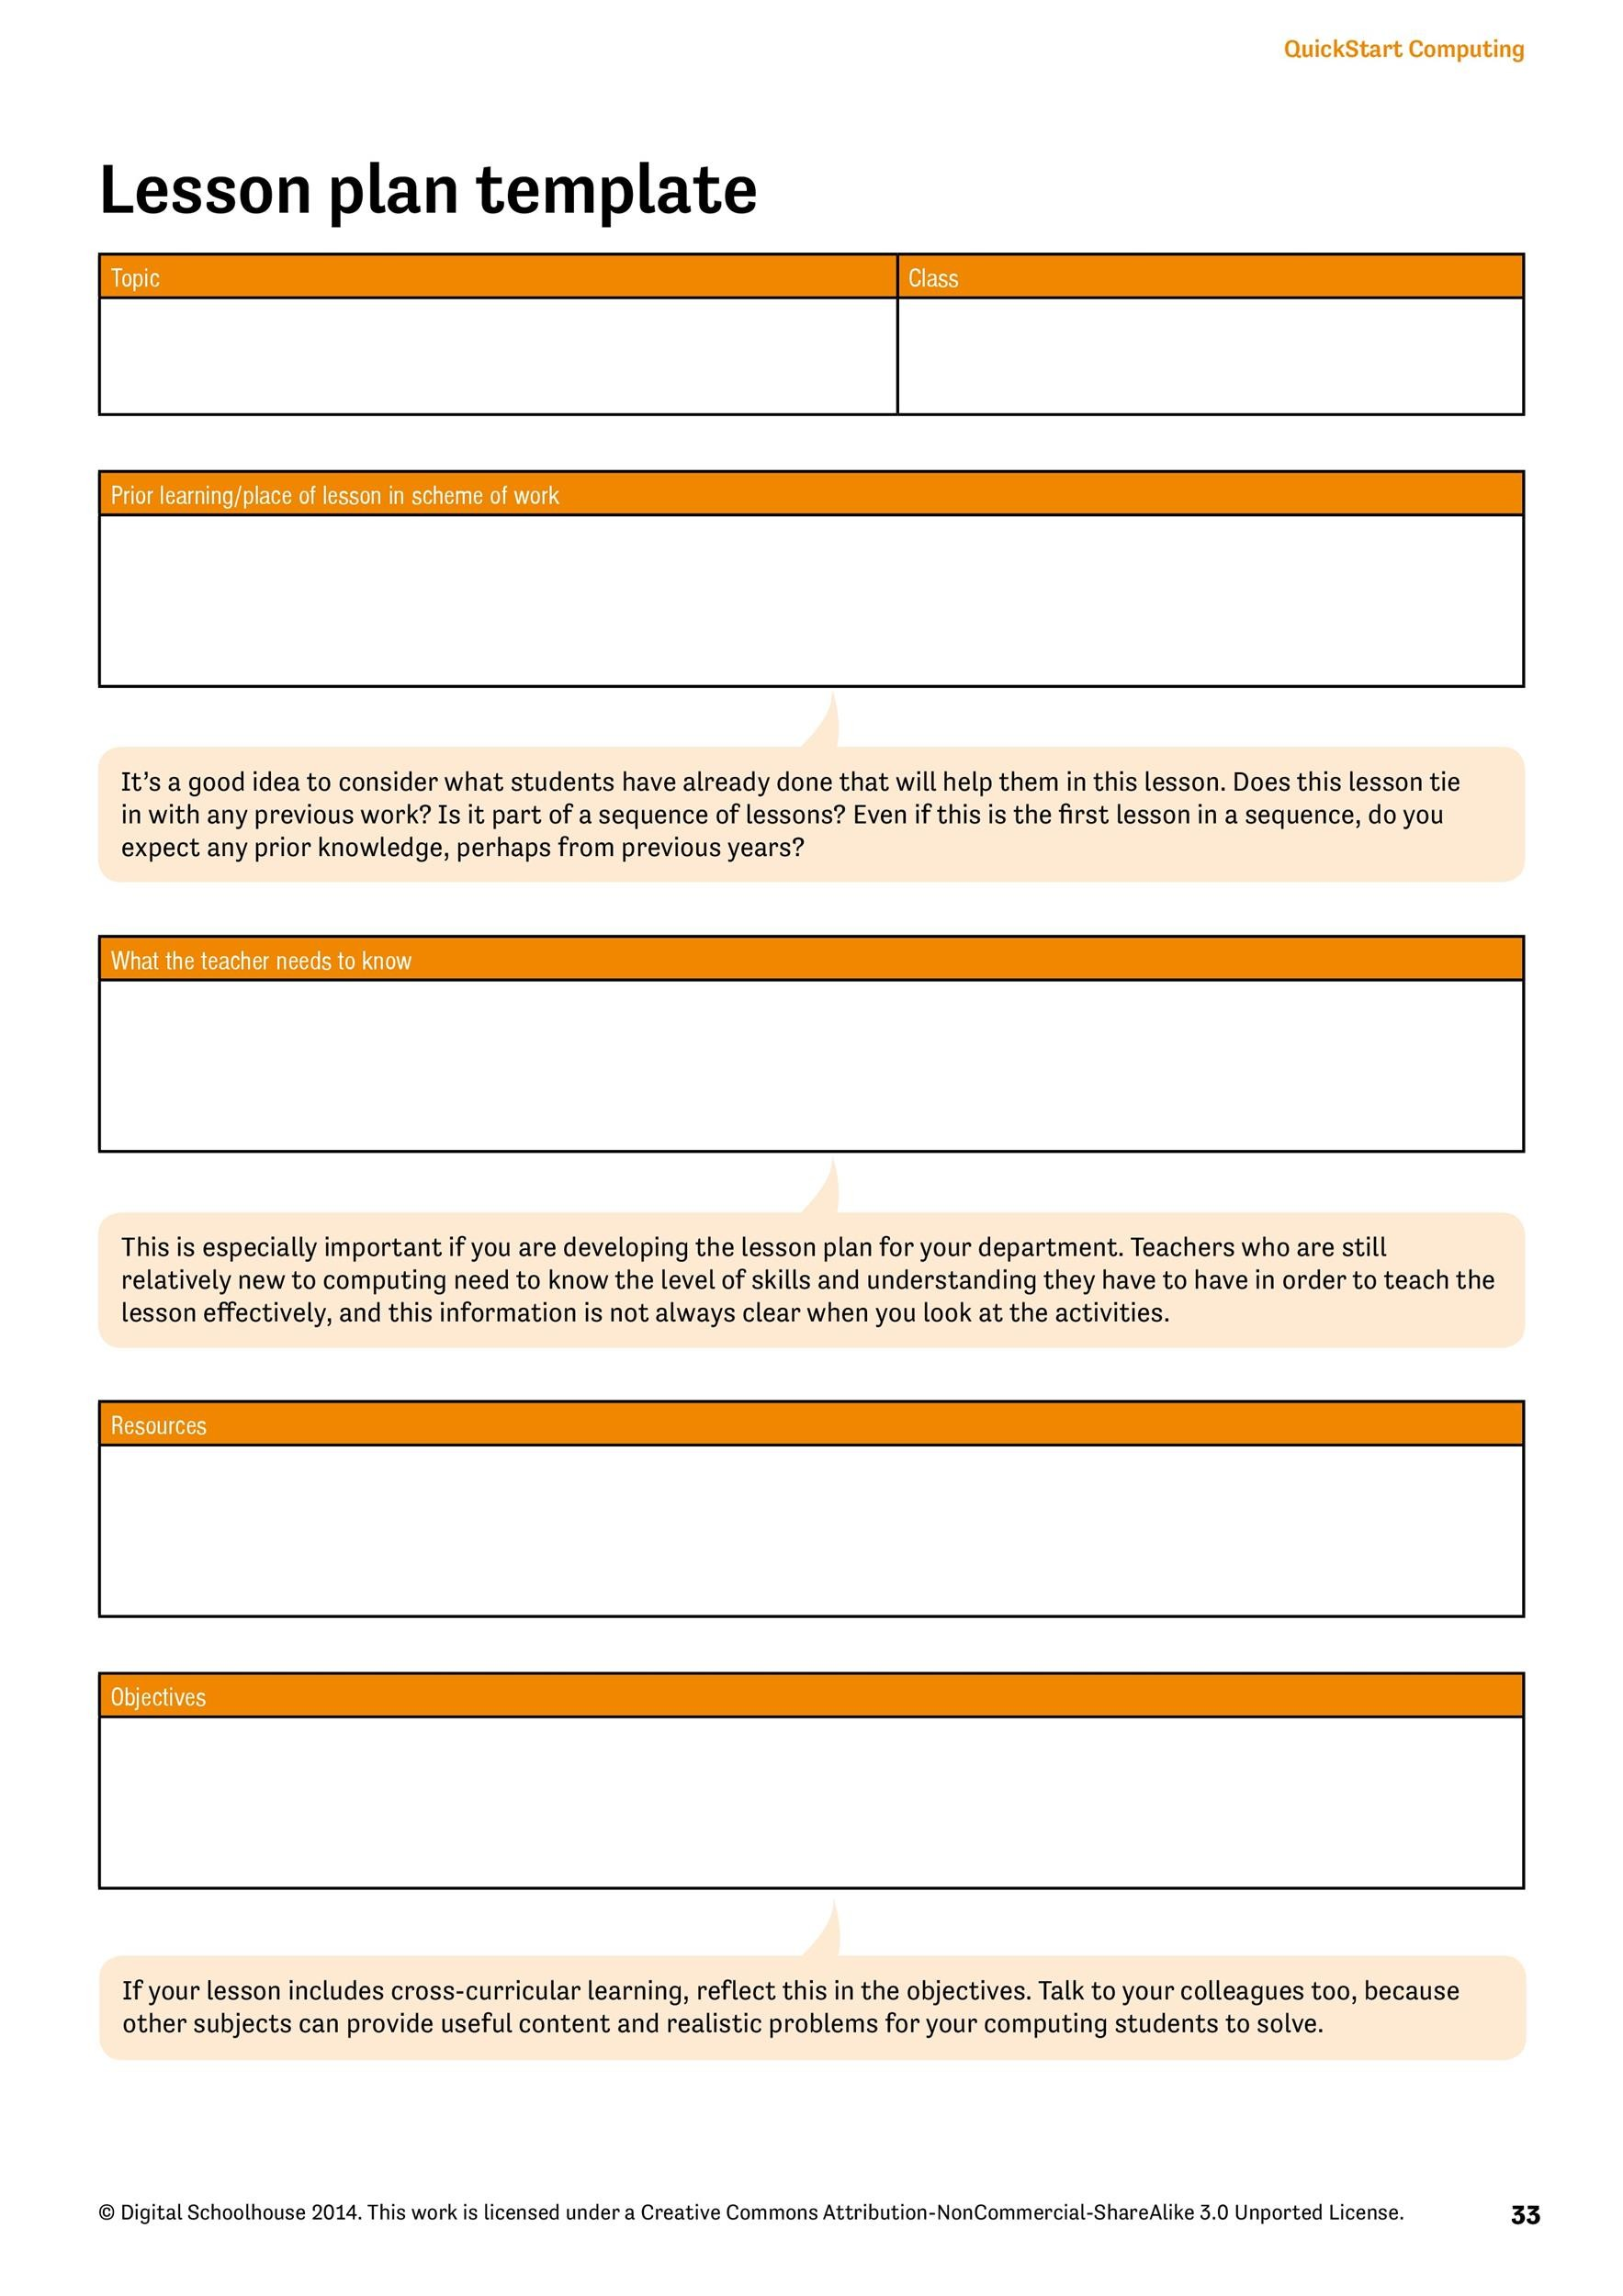 FREE Lesson Plan Templates Common Core Preschool Weekly - Free printable lesson plan templates